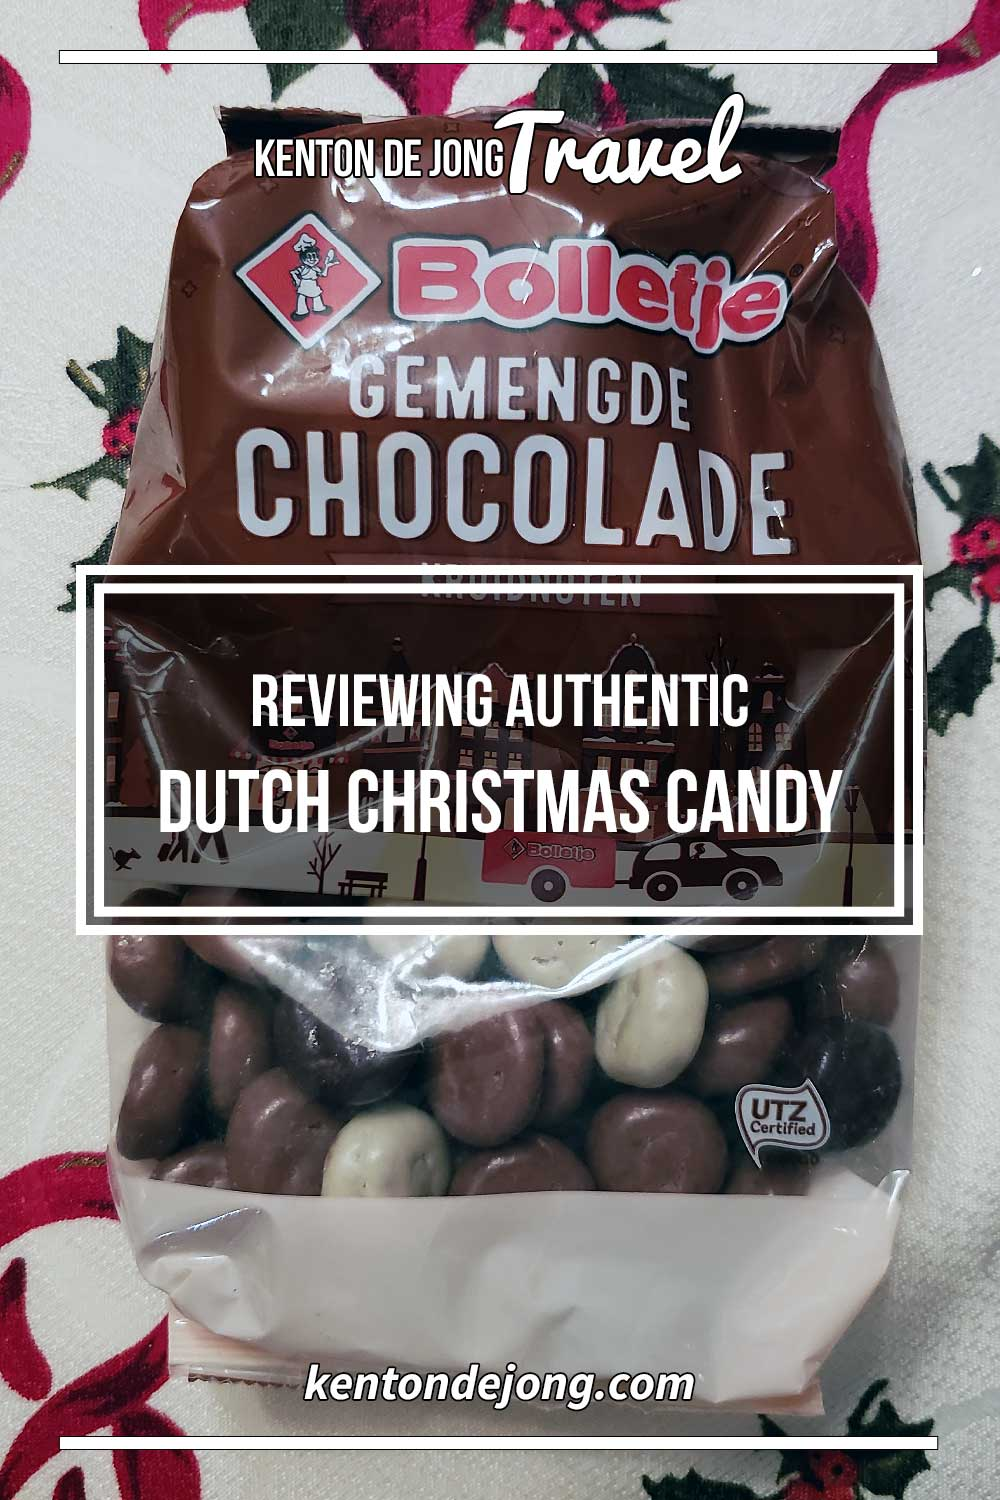 Reviewing Authentic Dutch Christmas Candy